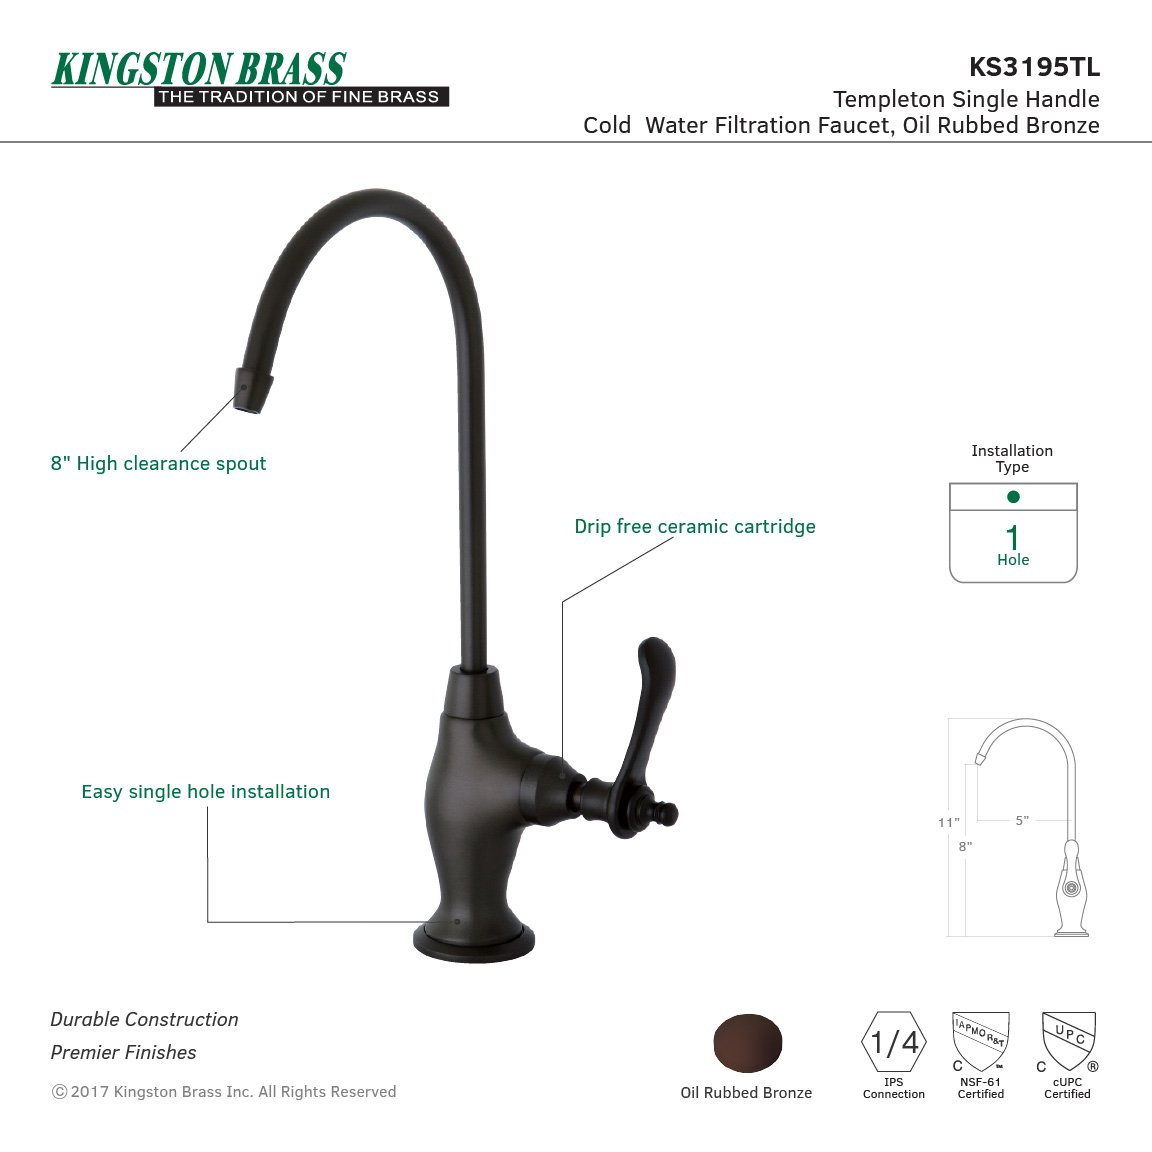 Kingston Brass Gourmetier KS3195TL Templeton Design 1/4 Turn Water Filter Faucet, Oil Rubbed Bronze by Kingston Brass